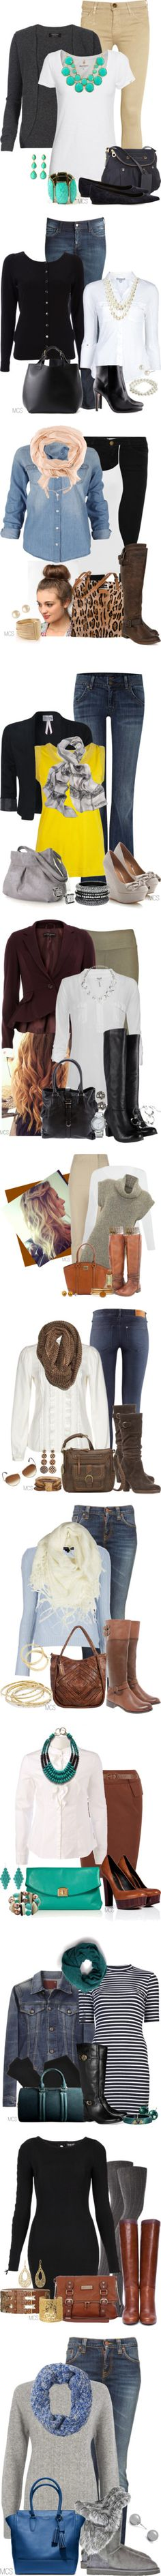 """""""Trends"""" by mclaires ❤ liked on Polyvore.  Love most all these outfits. Maybe not heels, but love the rest!  Wish I had someone to put my outfits together each day!"""